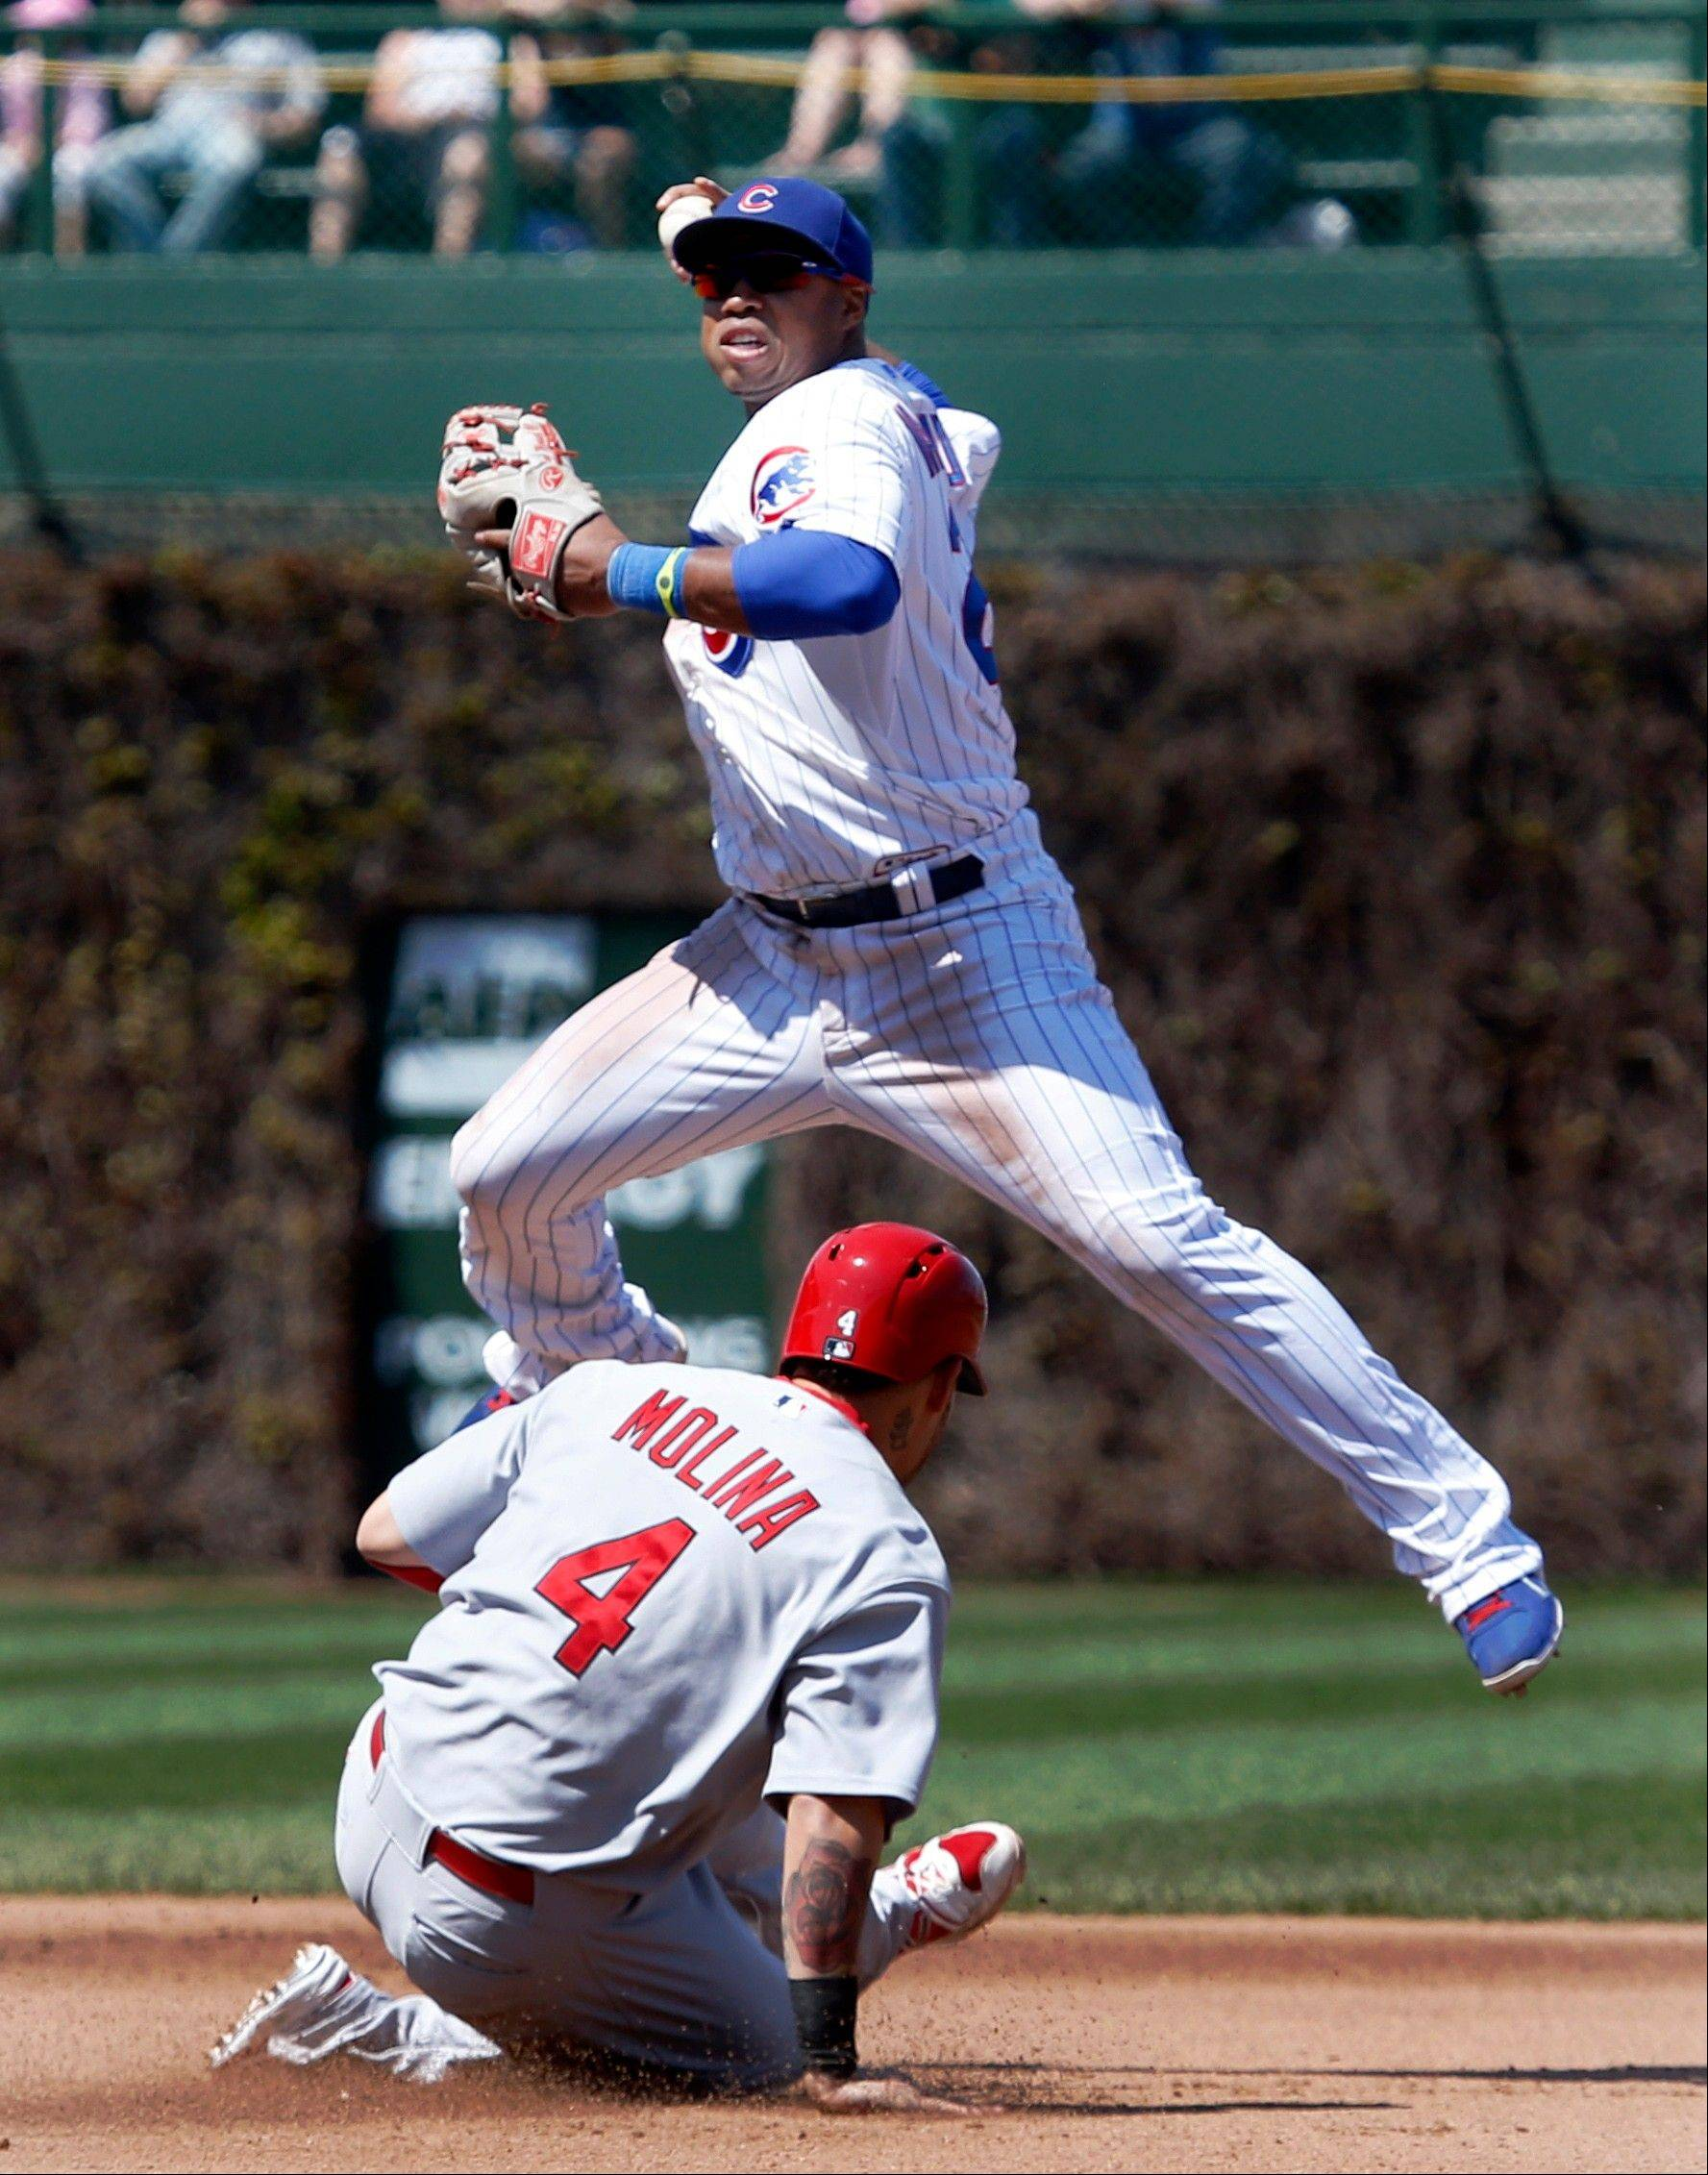 Cubs second baseman Luis Valbuena turns a double play after forcing out St. Louis Cardinals' Yadier Molina at second during the fourth inning of a baseball game Wednesday, May 8 2013, in Chicago. The Cardinals' David Freese was out at first.